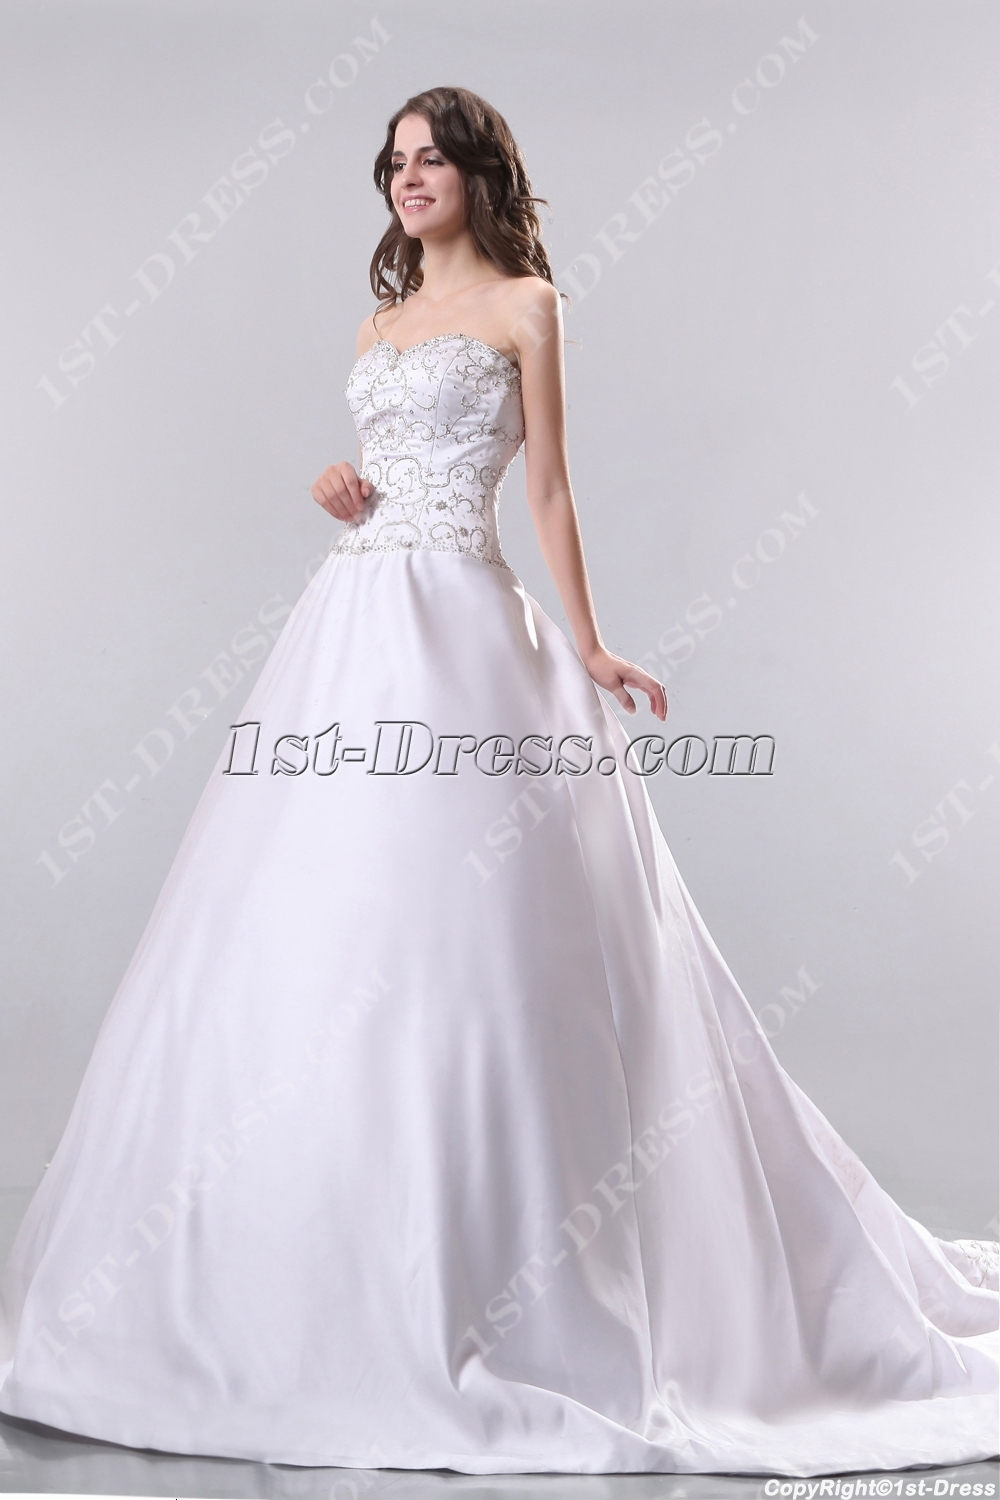 Ivory Embroidery Mature Bridal Gowns with Train in Fall:1st-dress.com